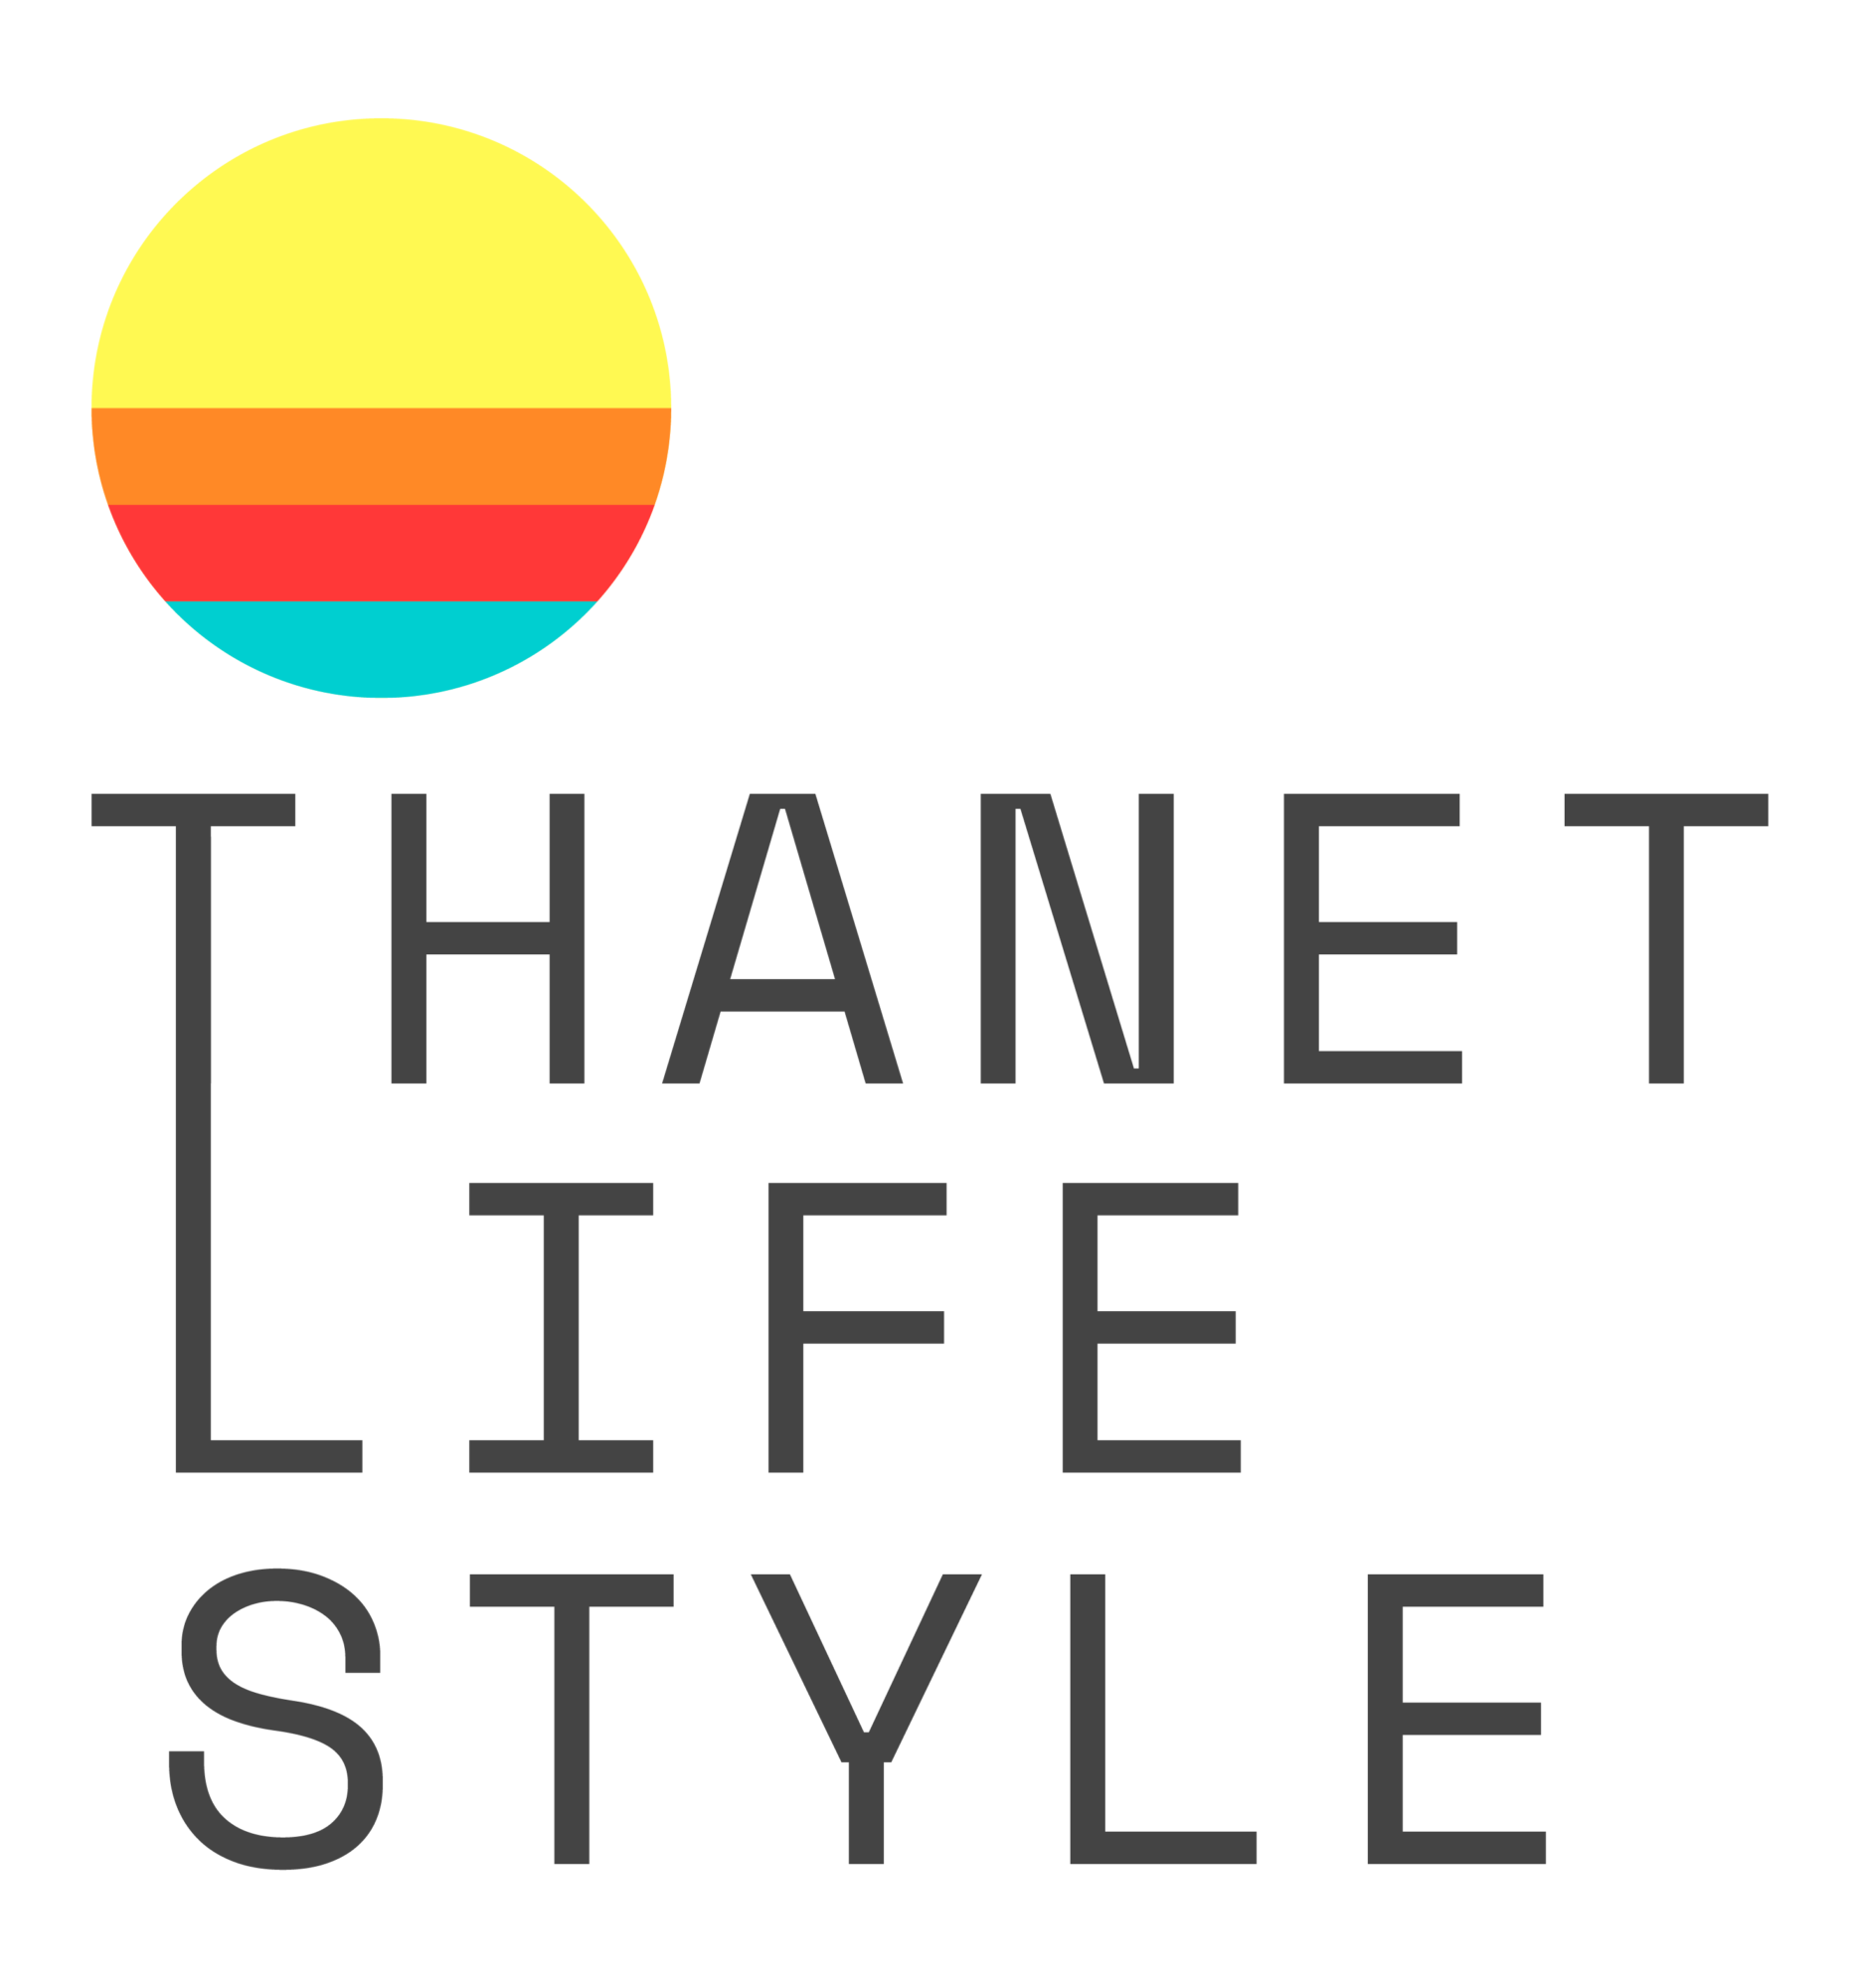 Thanet Lifestyle